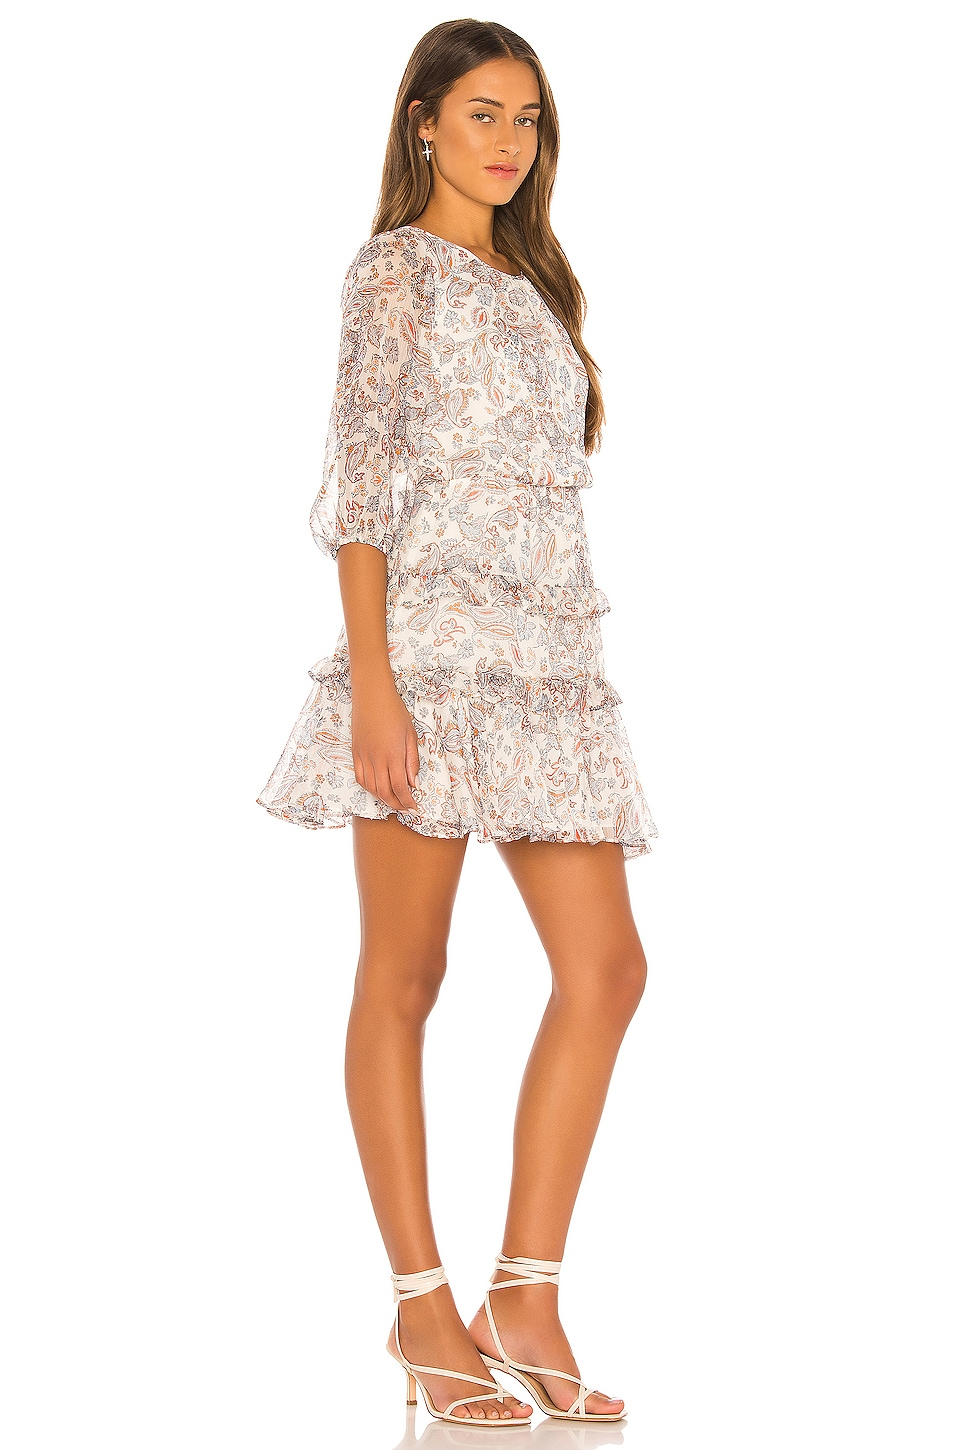 Tiered Ruffle Lyrical Paisley Dress, view 2, click to view large image.